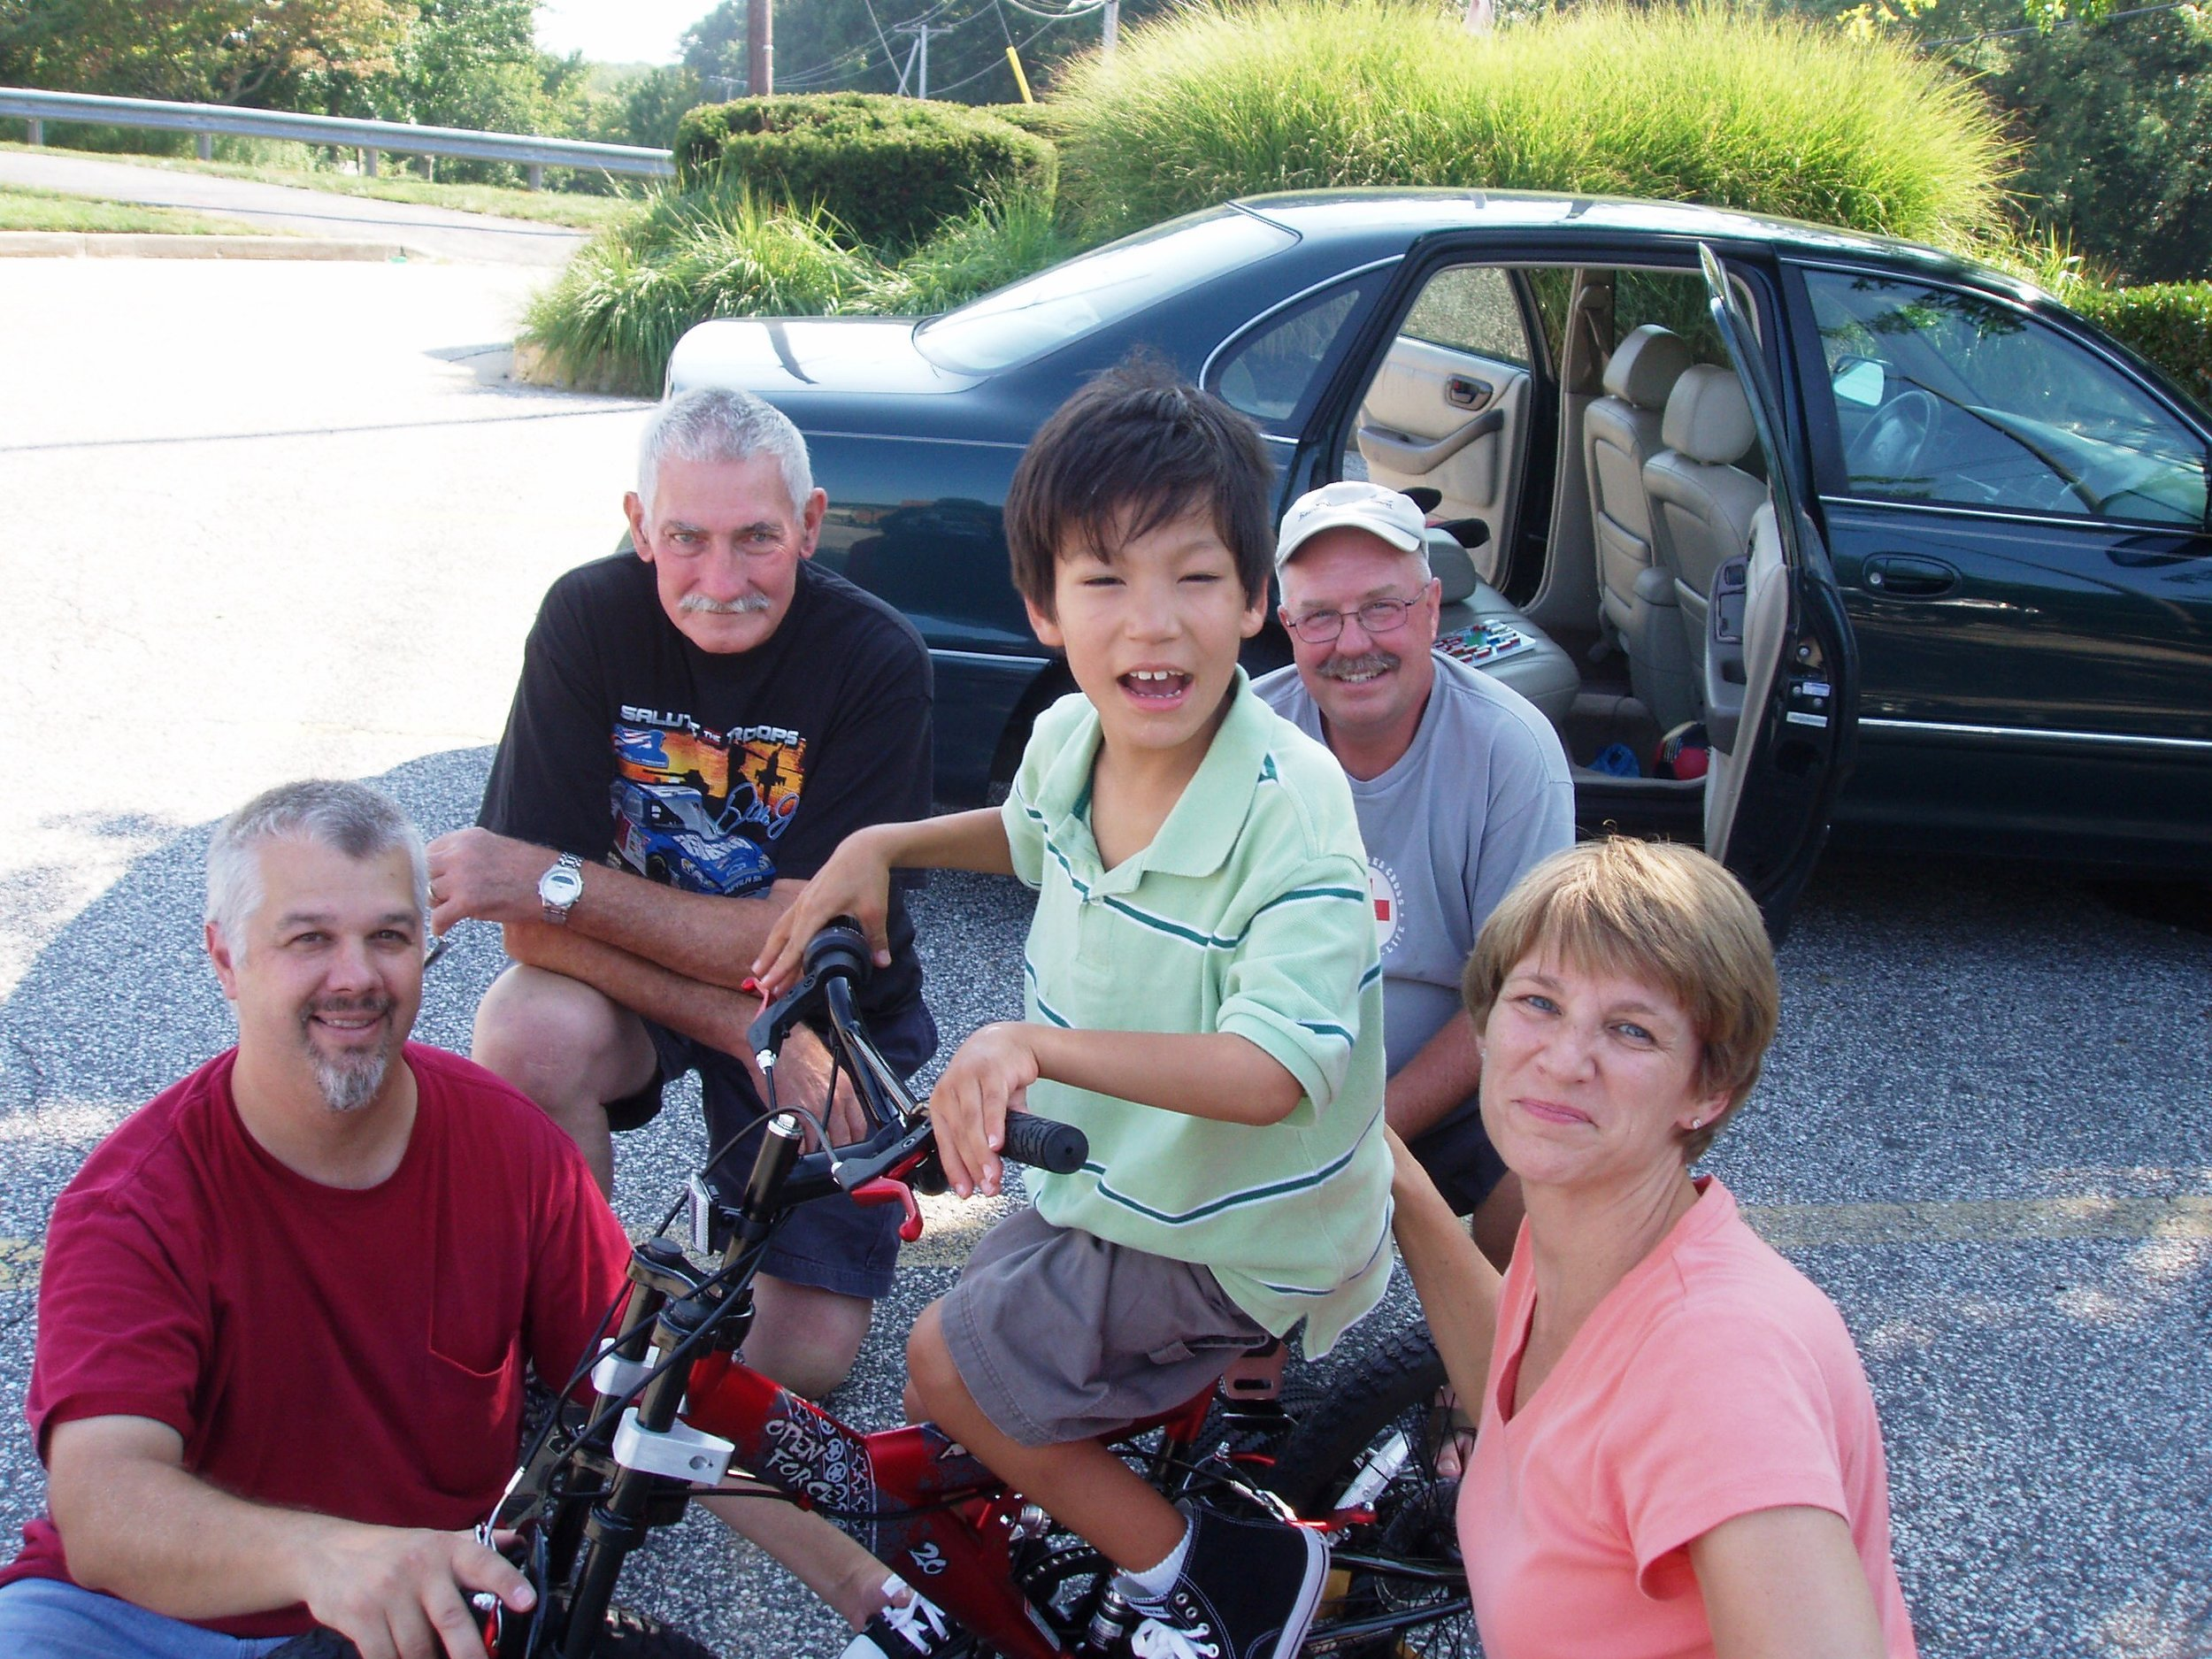 Five people are sitting outside, one is on a bicycle. A car with the back doors open is in the background.